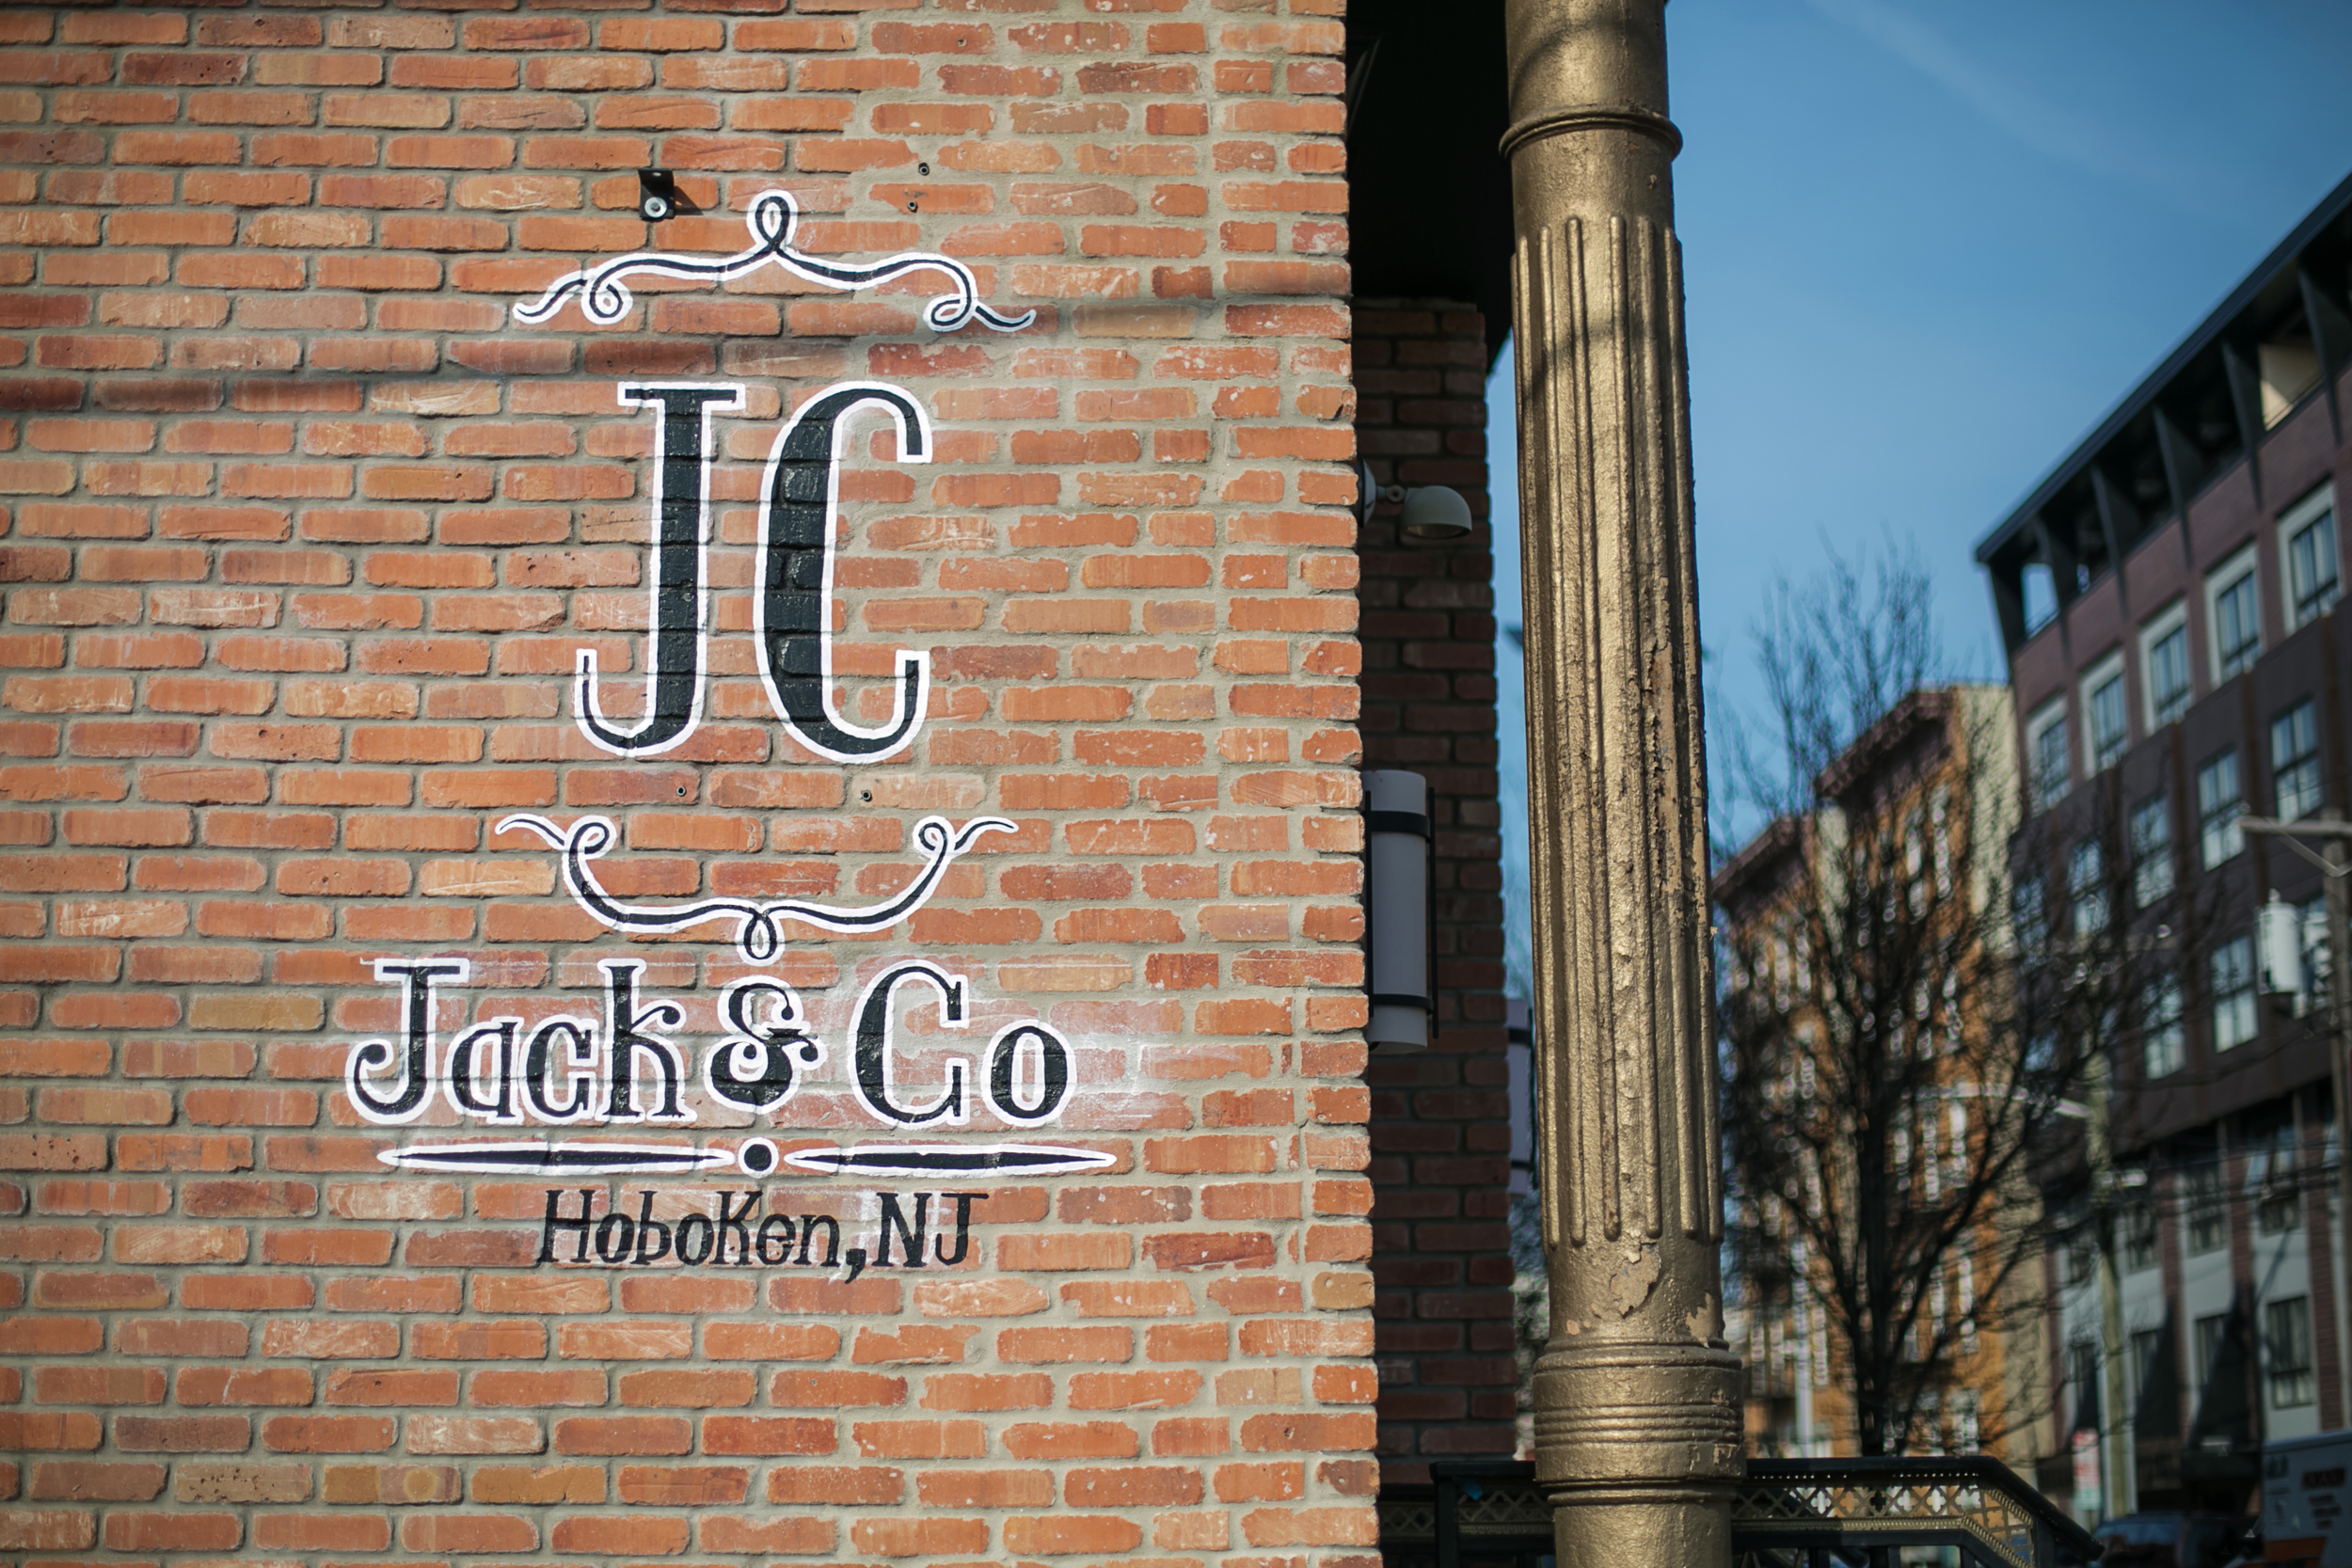 Jack and Co. Front.jpg